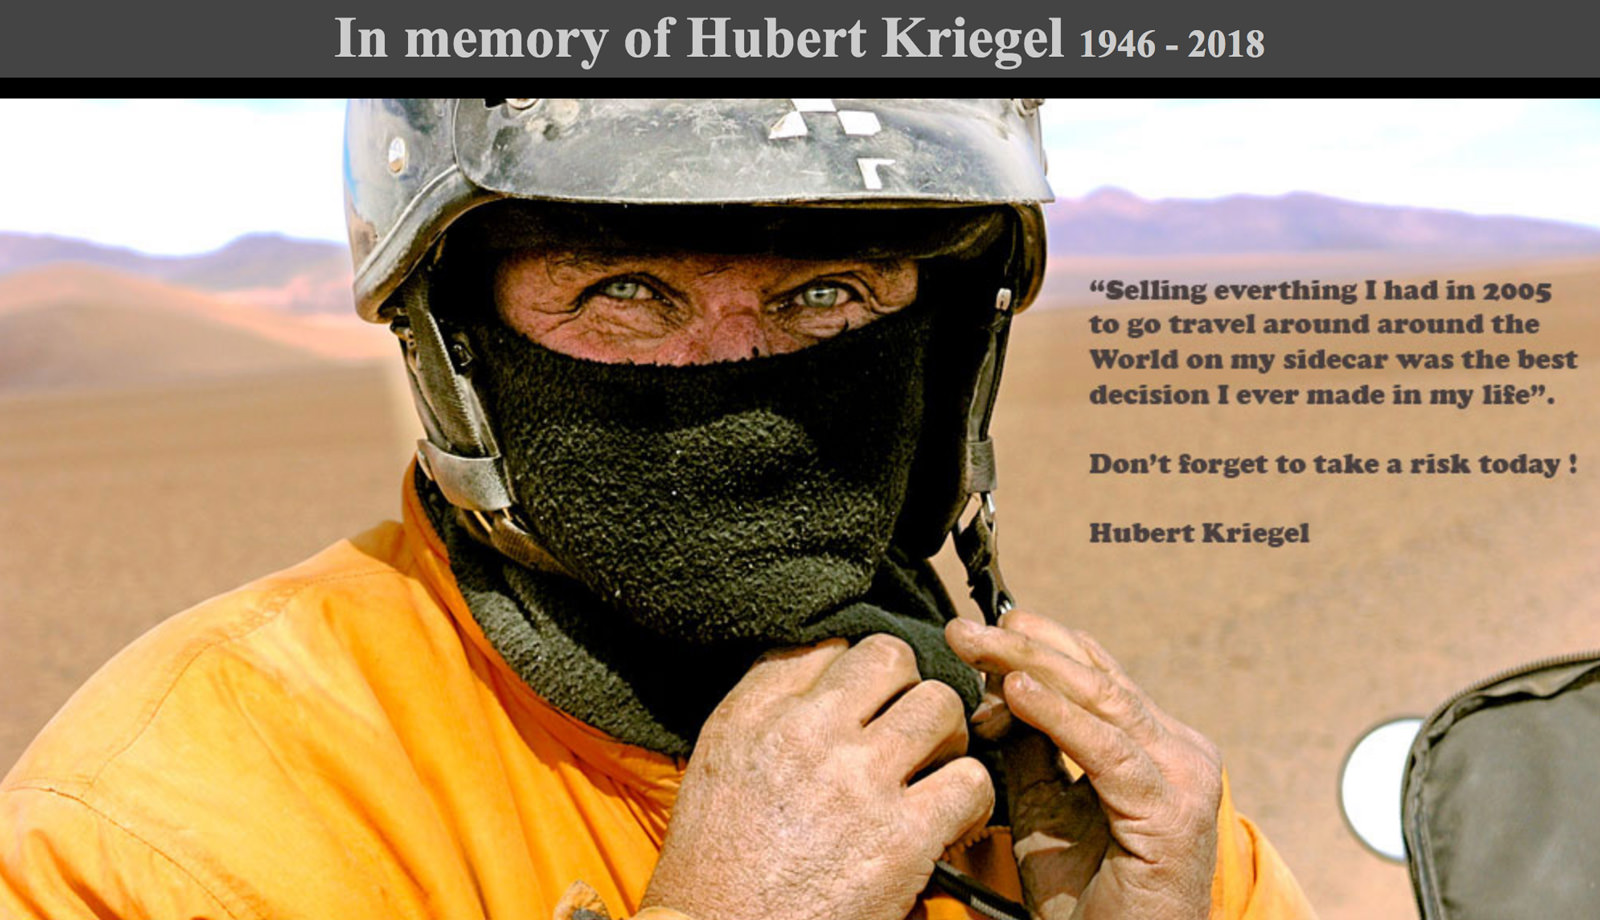 In Memory of Hubert Kriegel